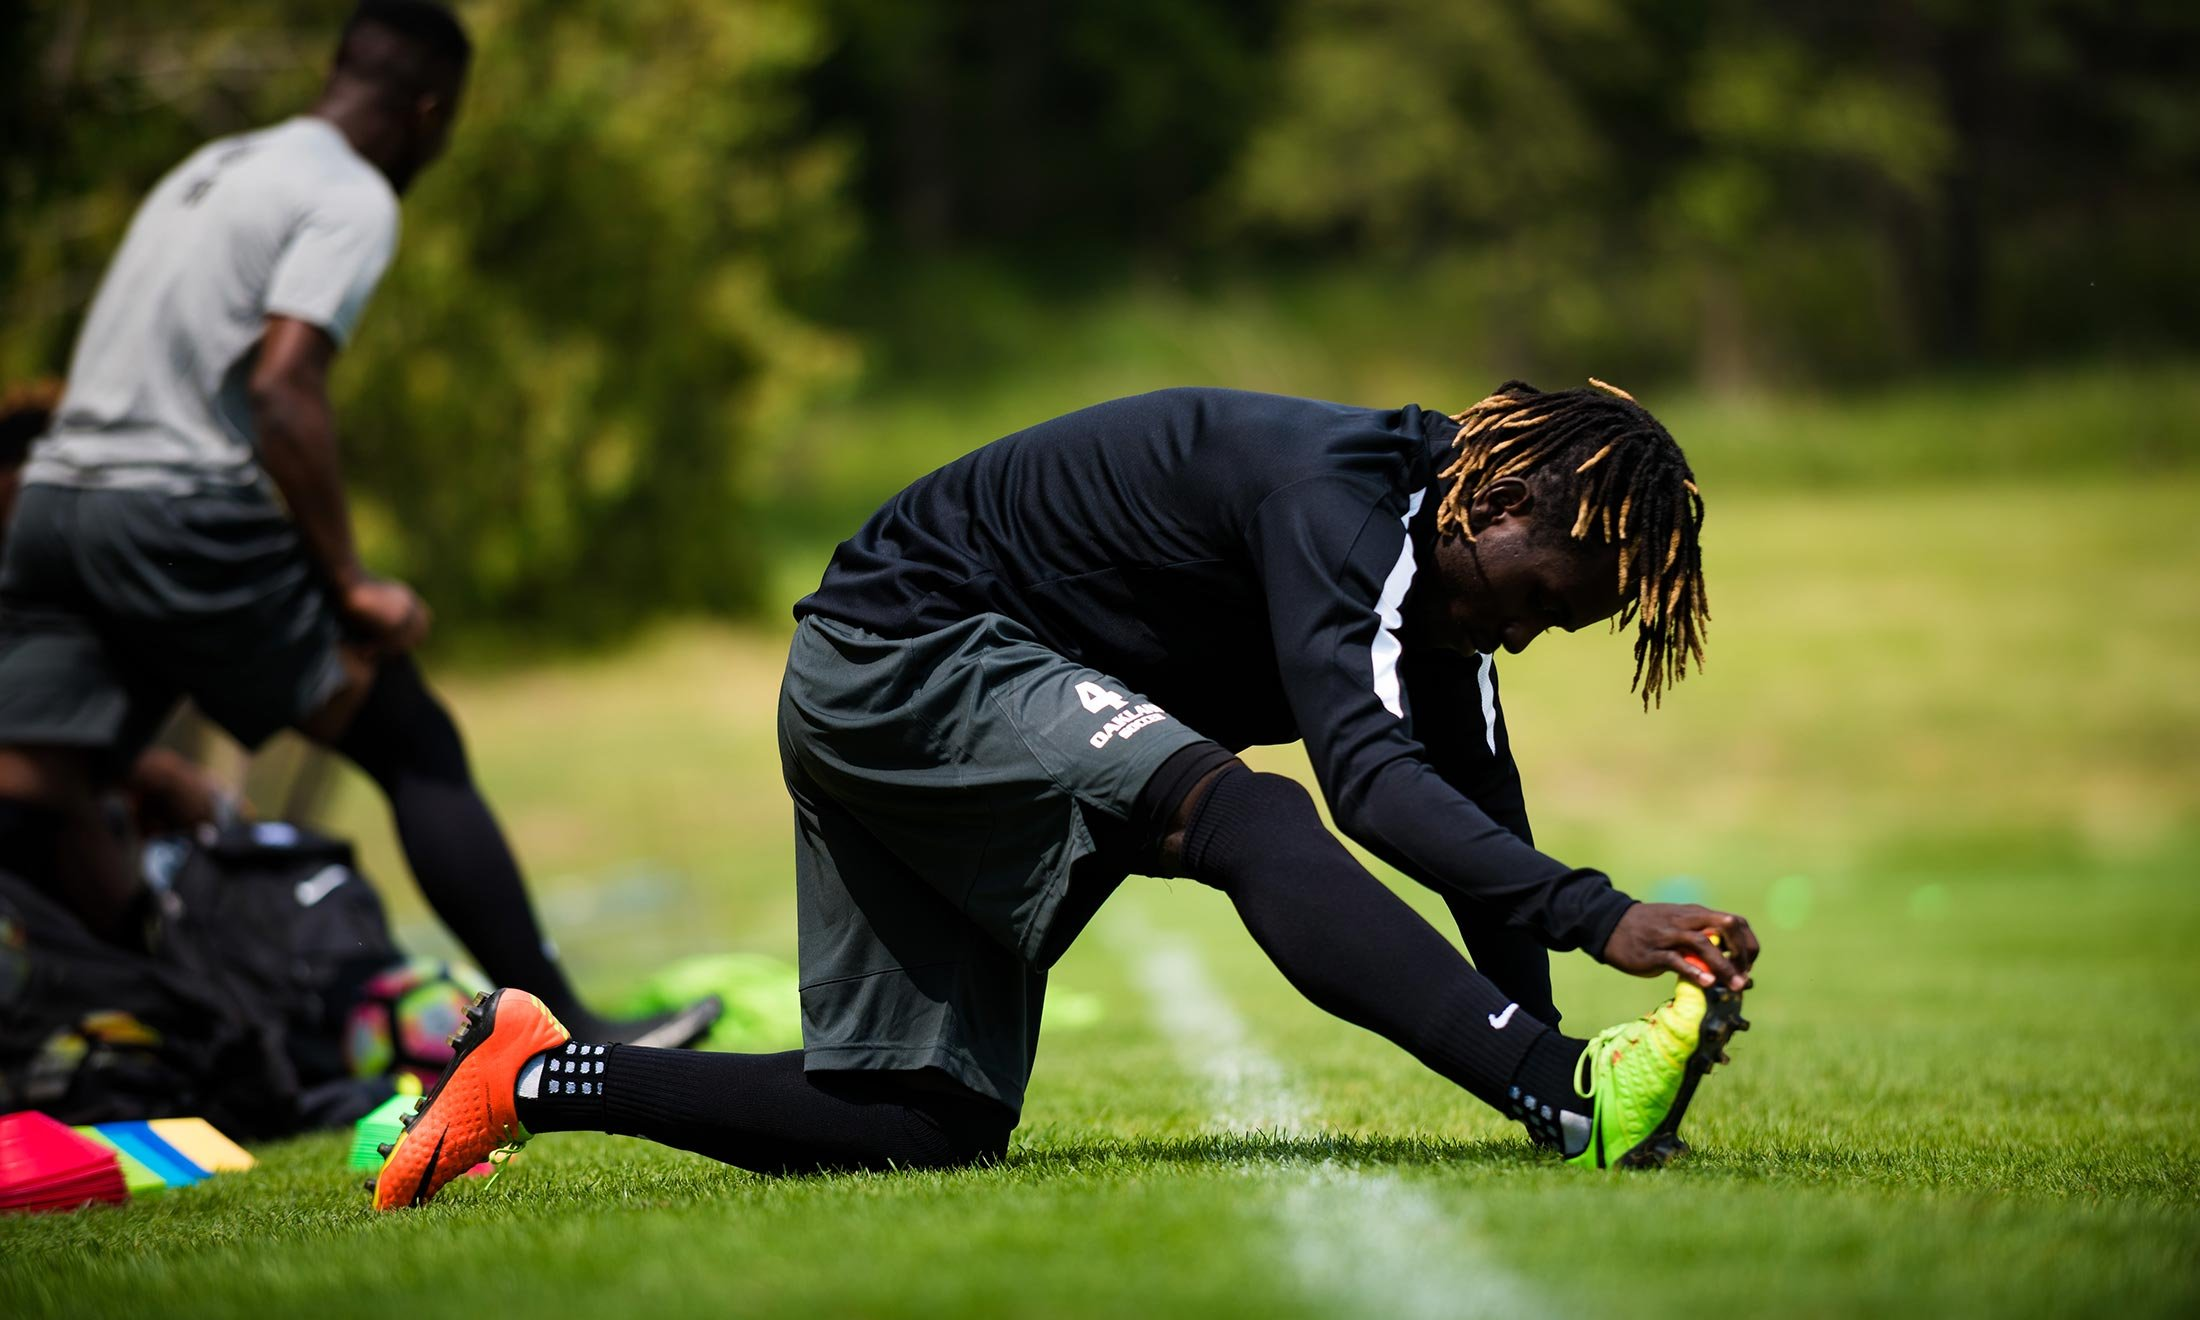 Soccer player Wilfred Williams stretches his right leg on the grass of the Oakland University soccer practice field while other teammates practice behind him